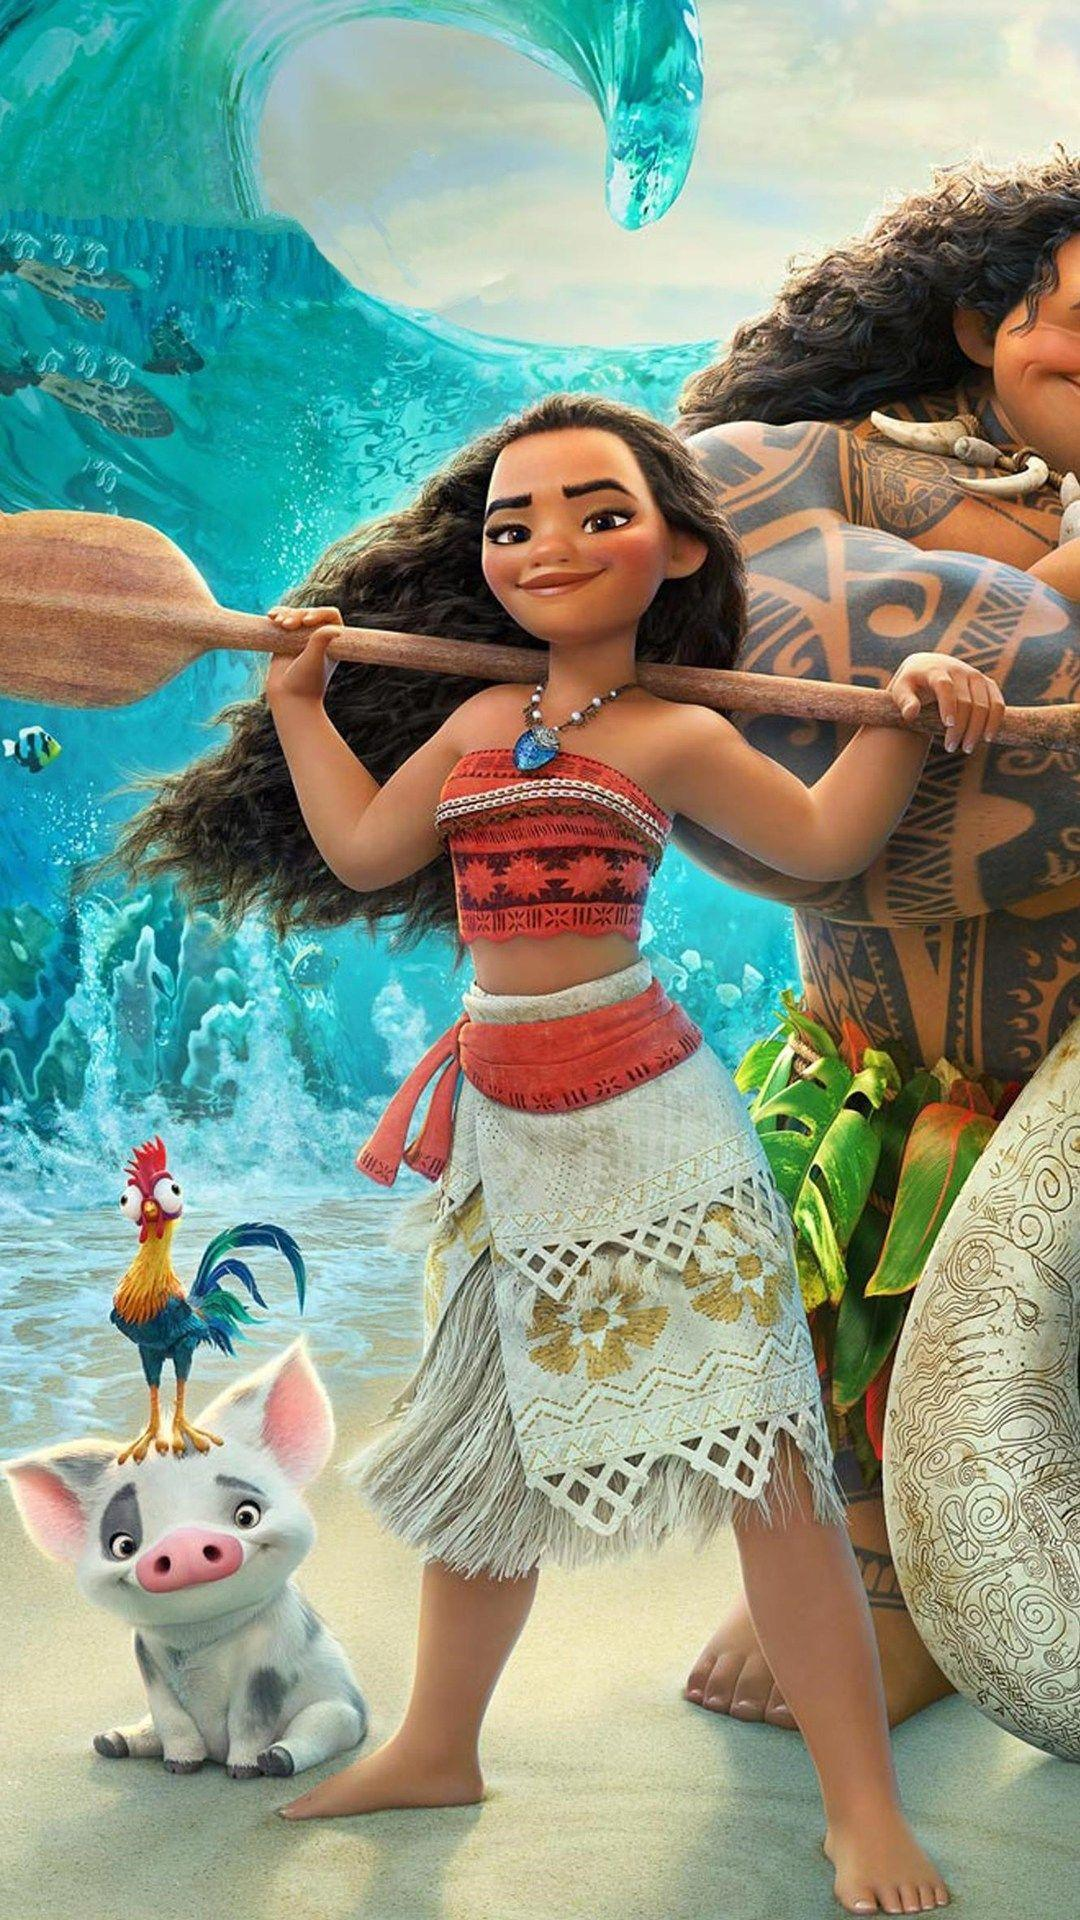 Moana Android Wallpapers - Wallpaper Cave